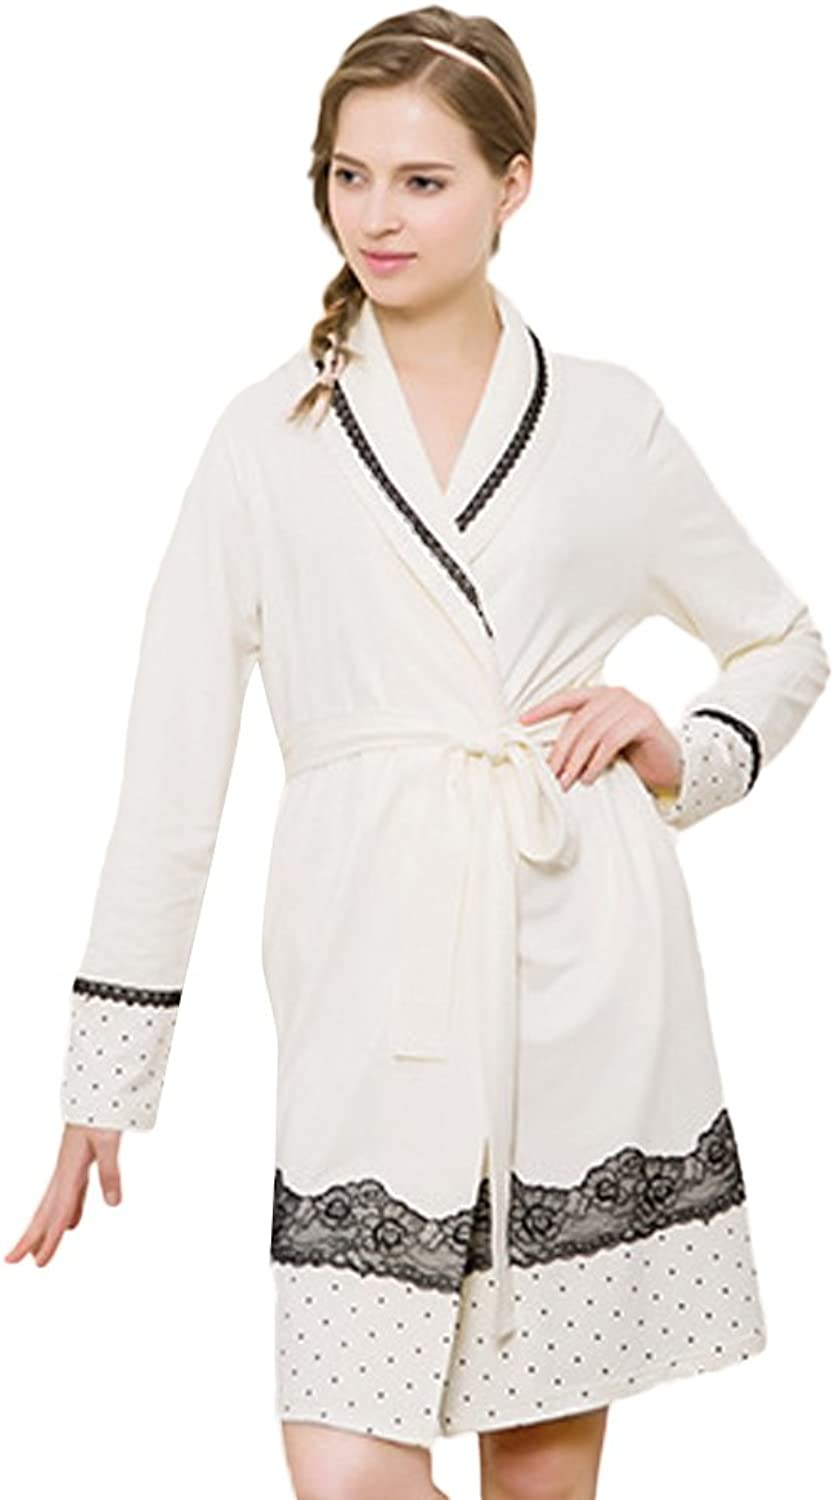 Insun Women's Long Sleeve Lace Detail Robe Bathrobe Nightgown